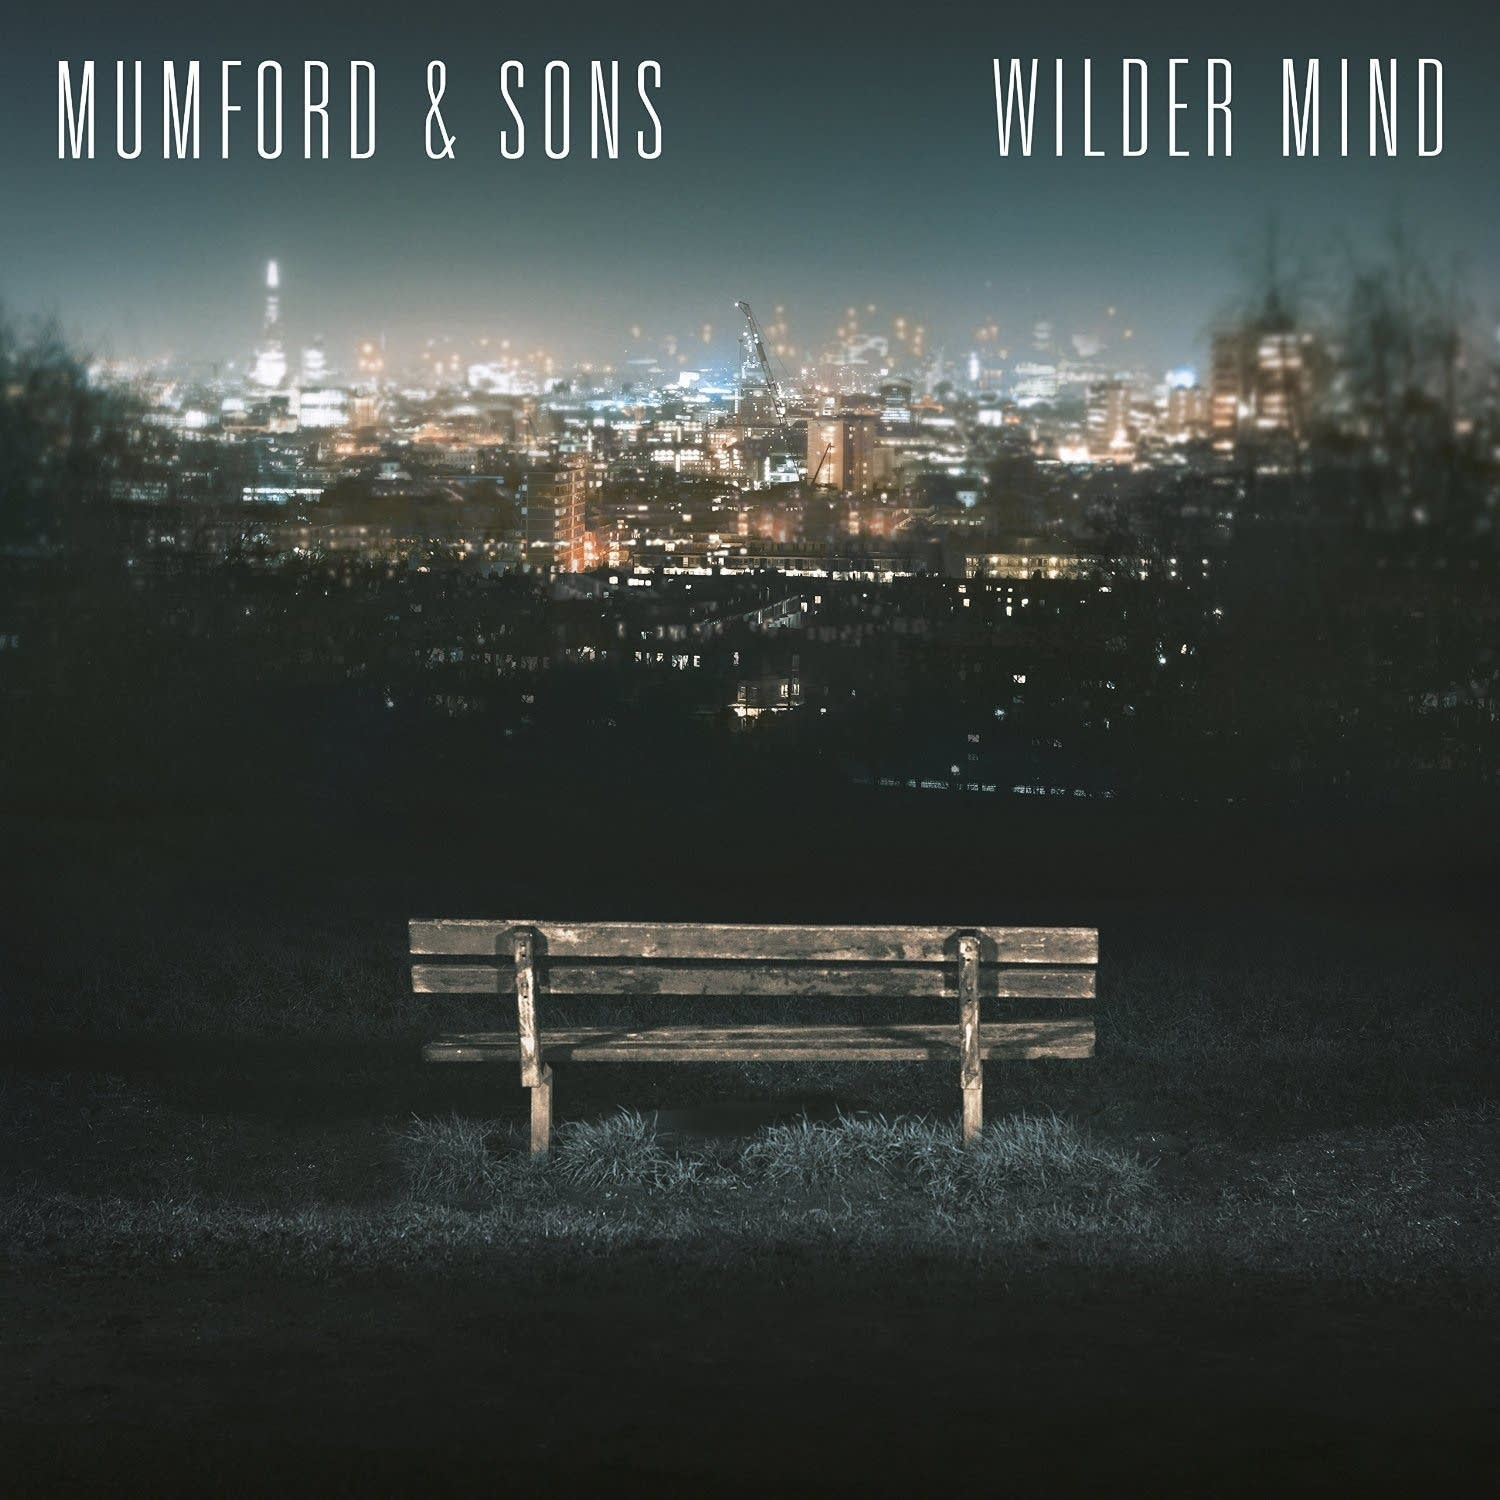 Mumford & Sons, 'Wilder Mind'